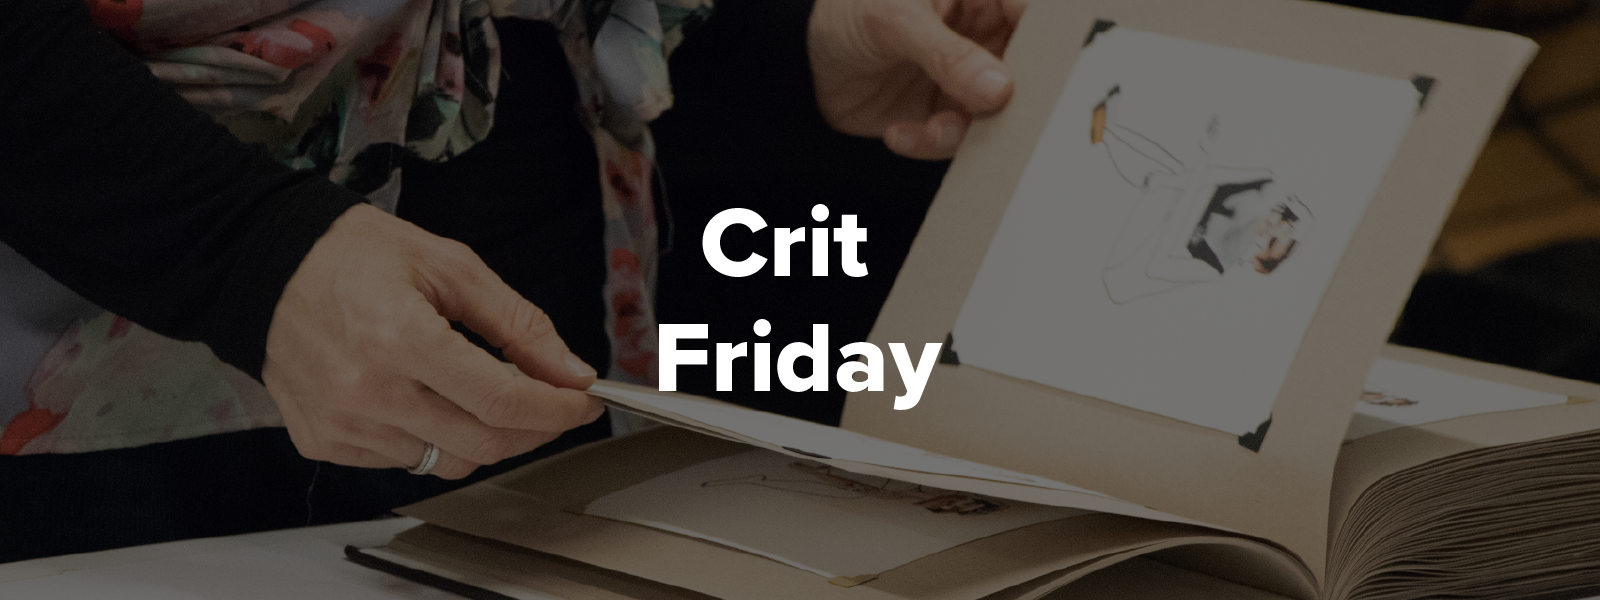 Crit Friday Event Banner